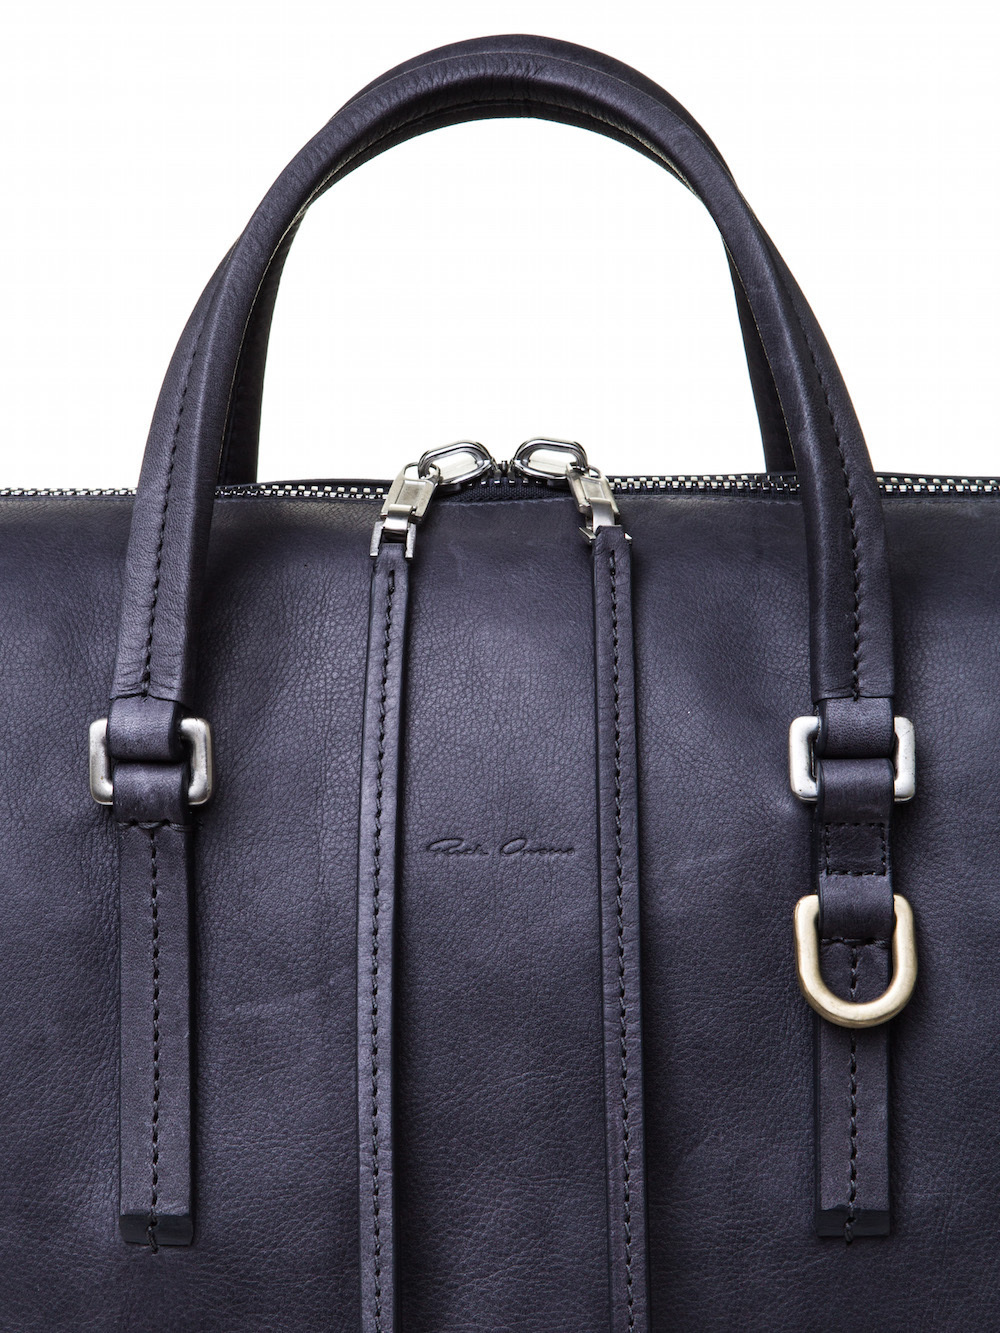 RICK OWENS CITY BAG IN PURPLE CALF LEATHER